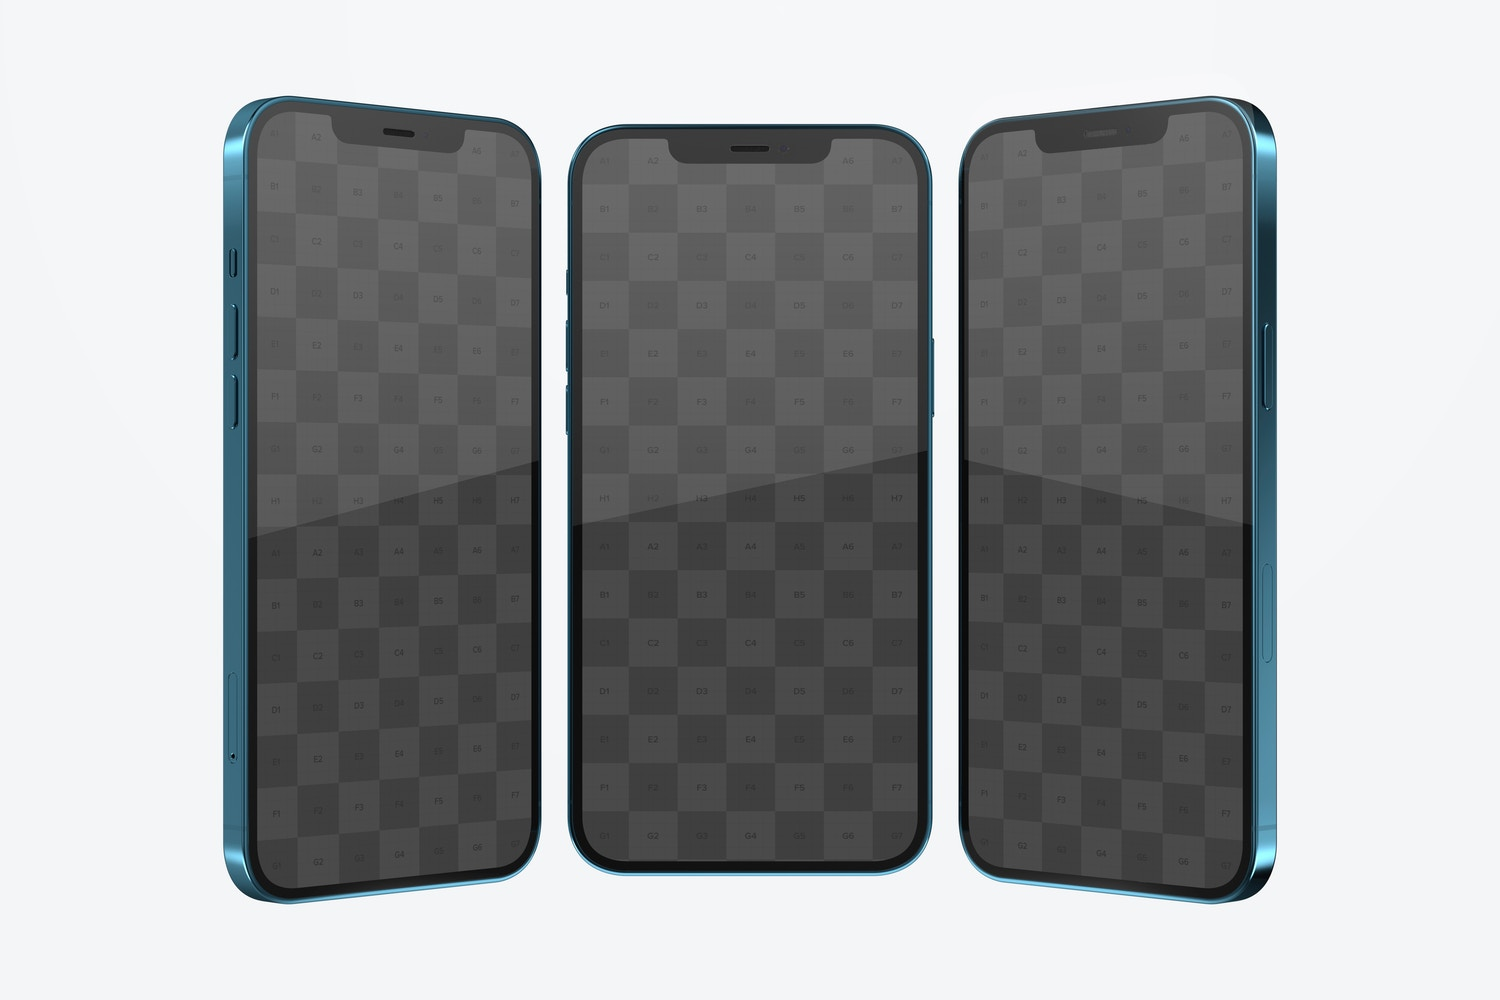 iPhone 12 Mockup, Front and Side View